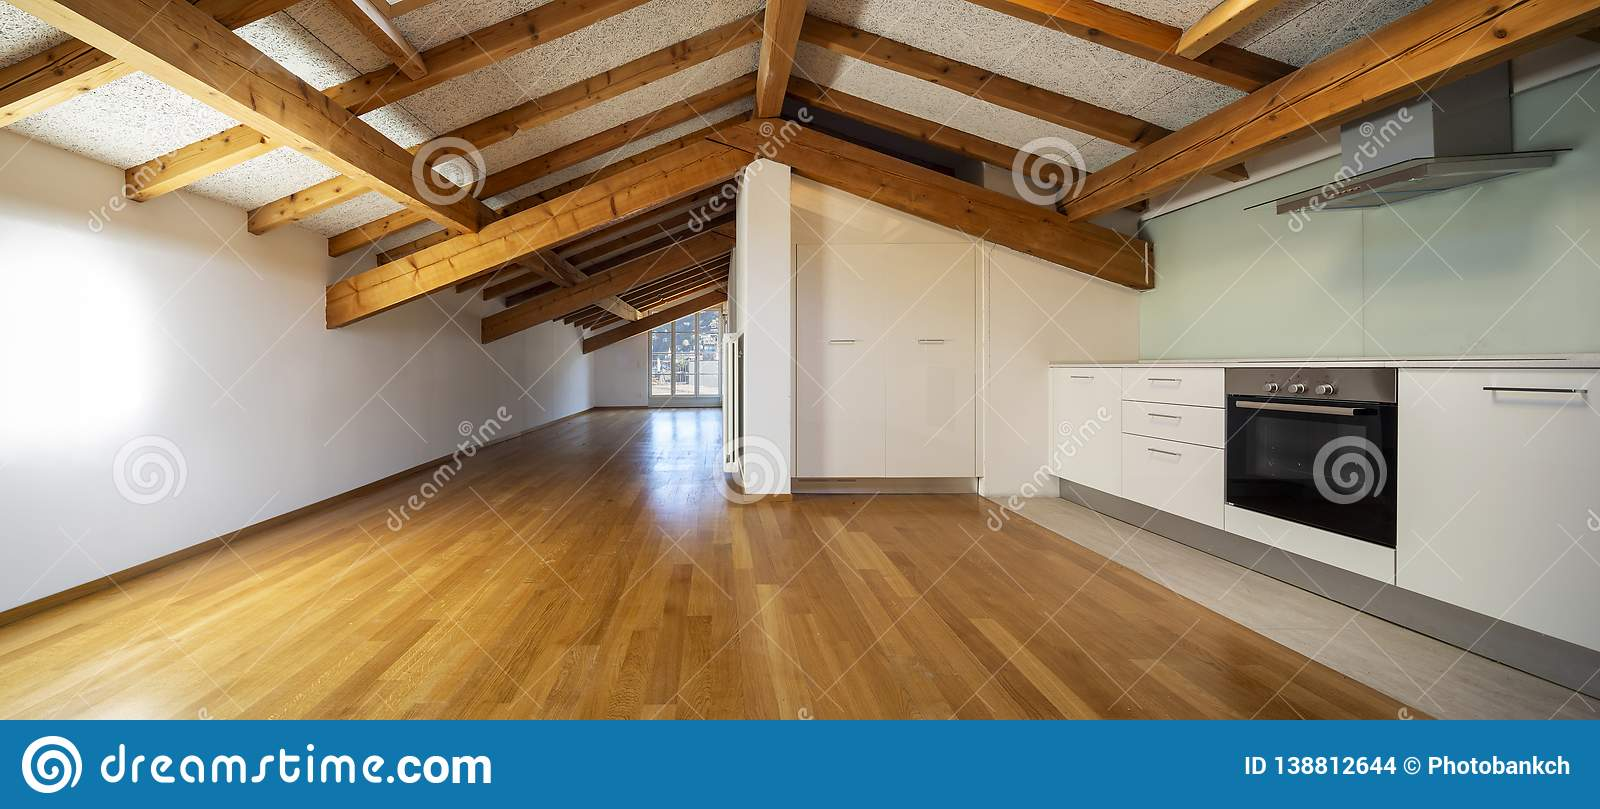 Kitchen in empty apartment with wooden beams